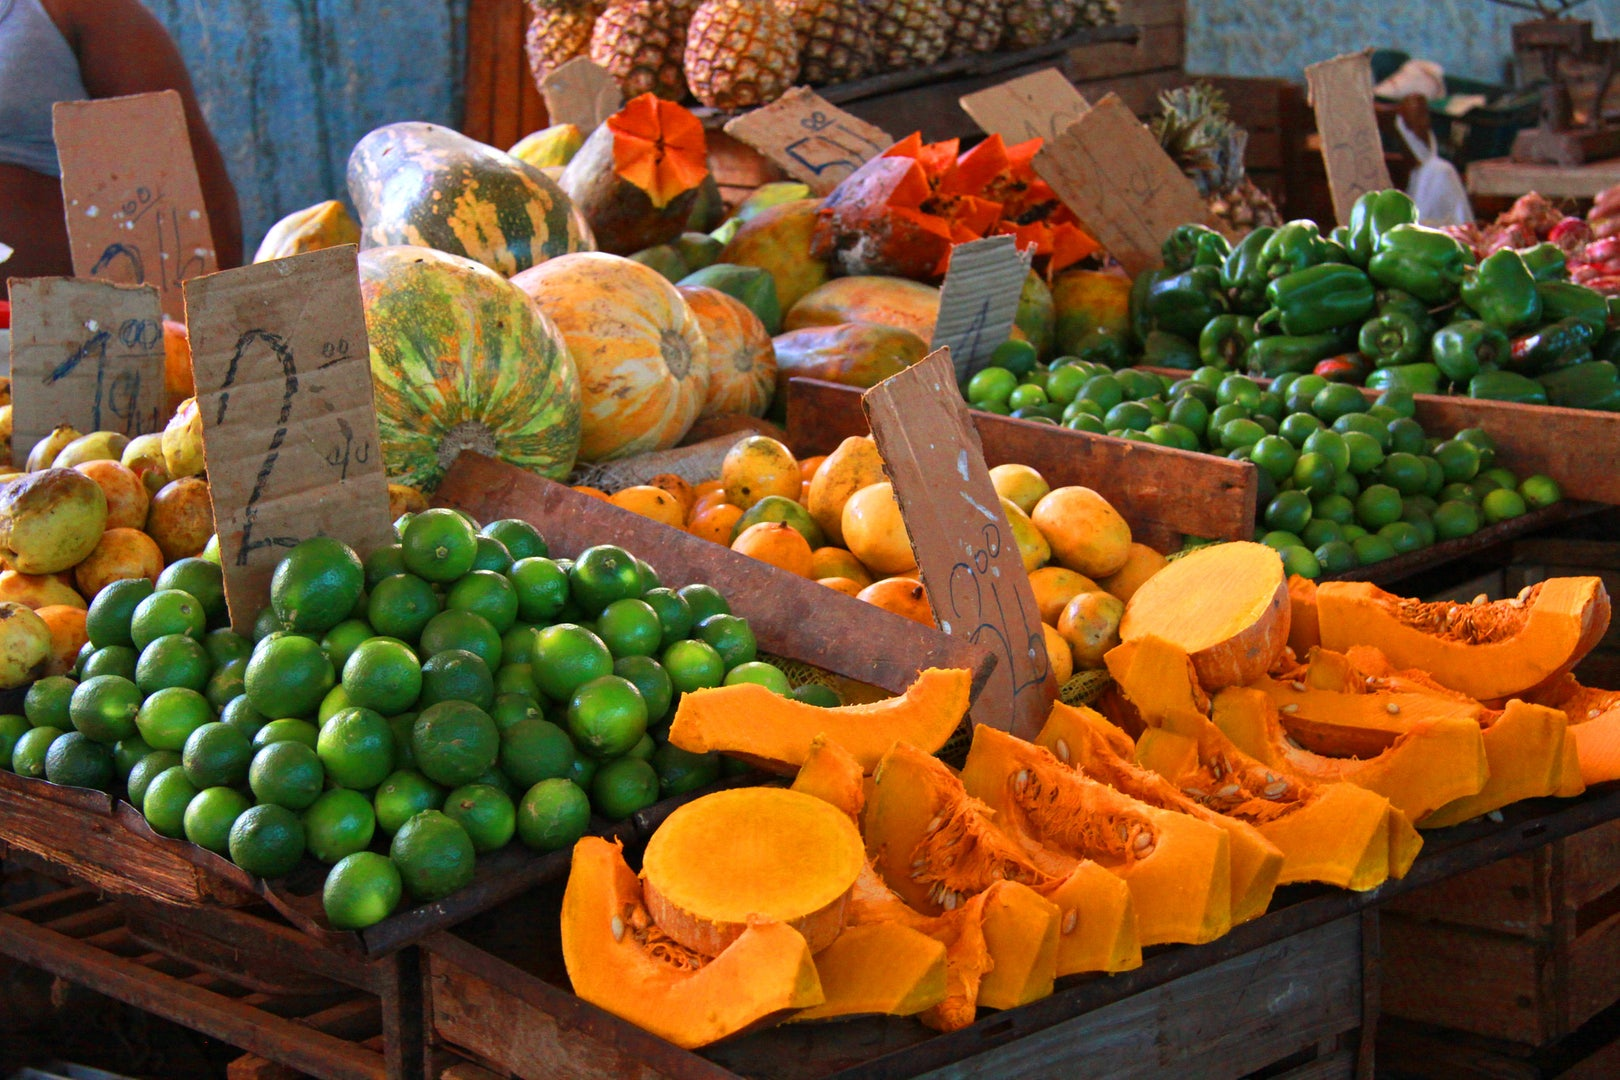 fruits at a street market in Havana